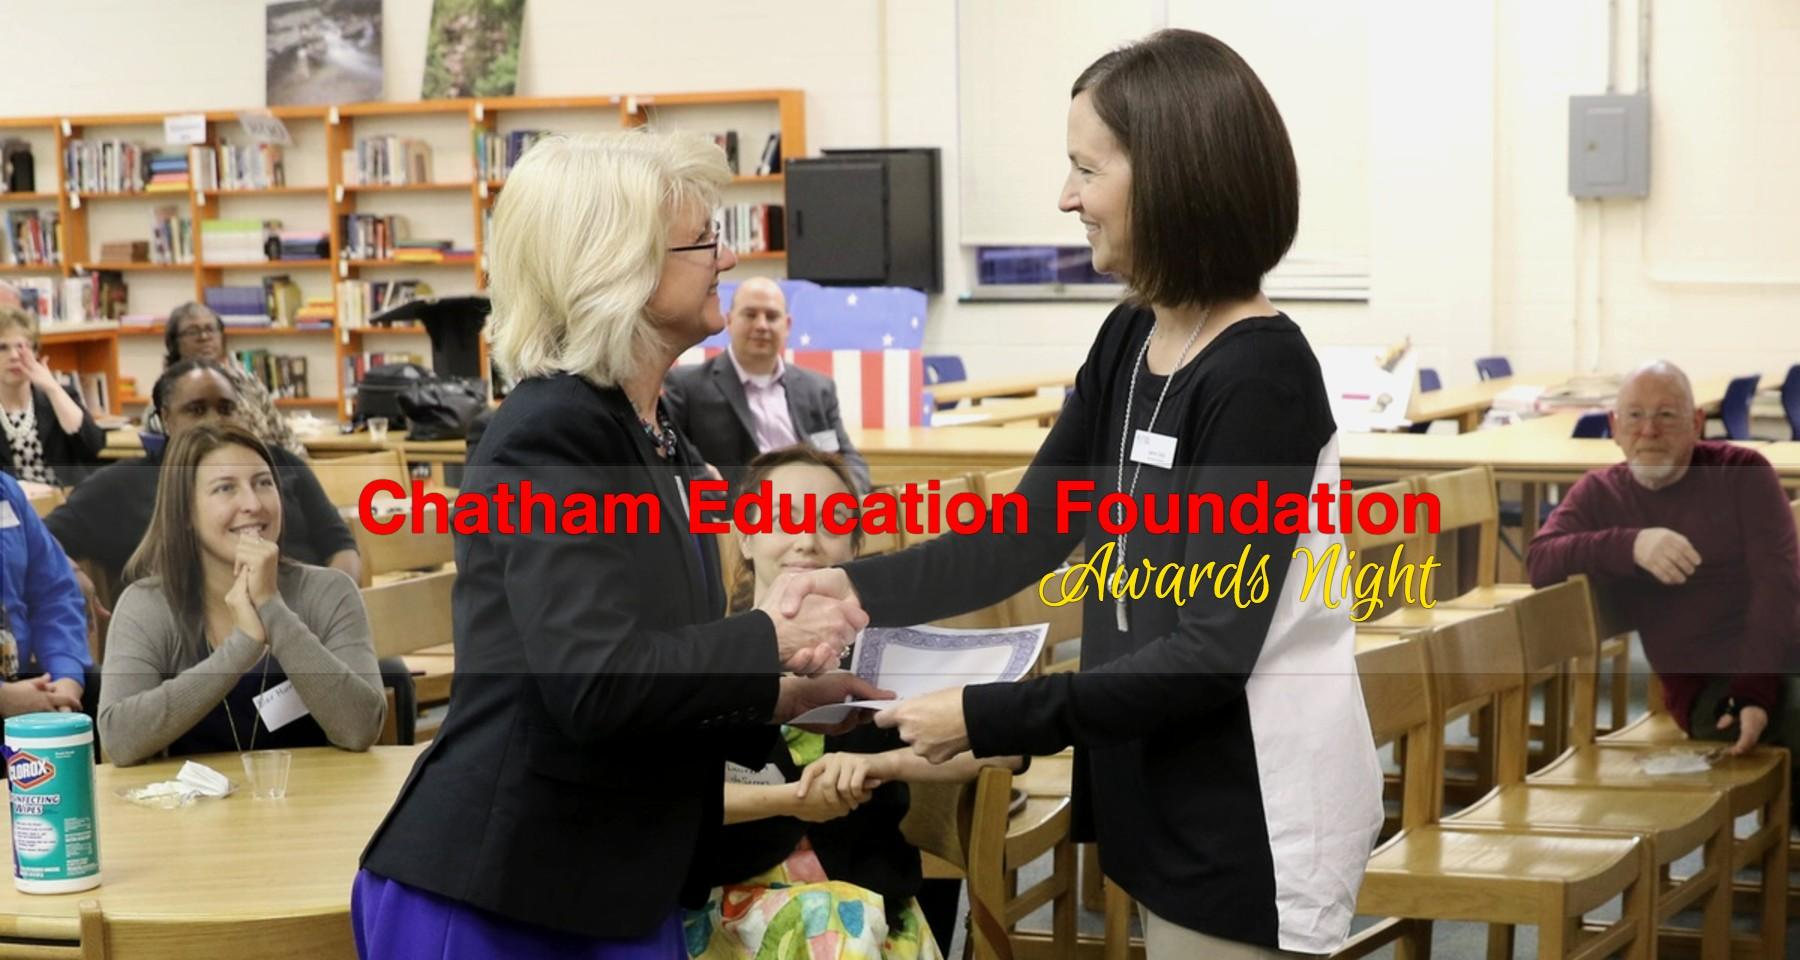 Chatham Teachers Earn $35,000 In Chatham Education Foundation Grants & Scholarships